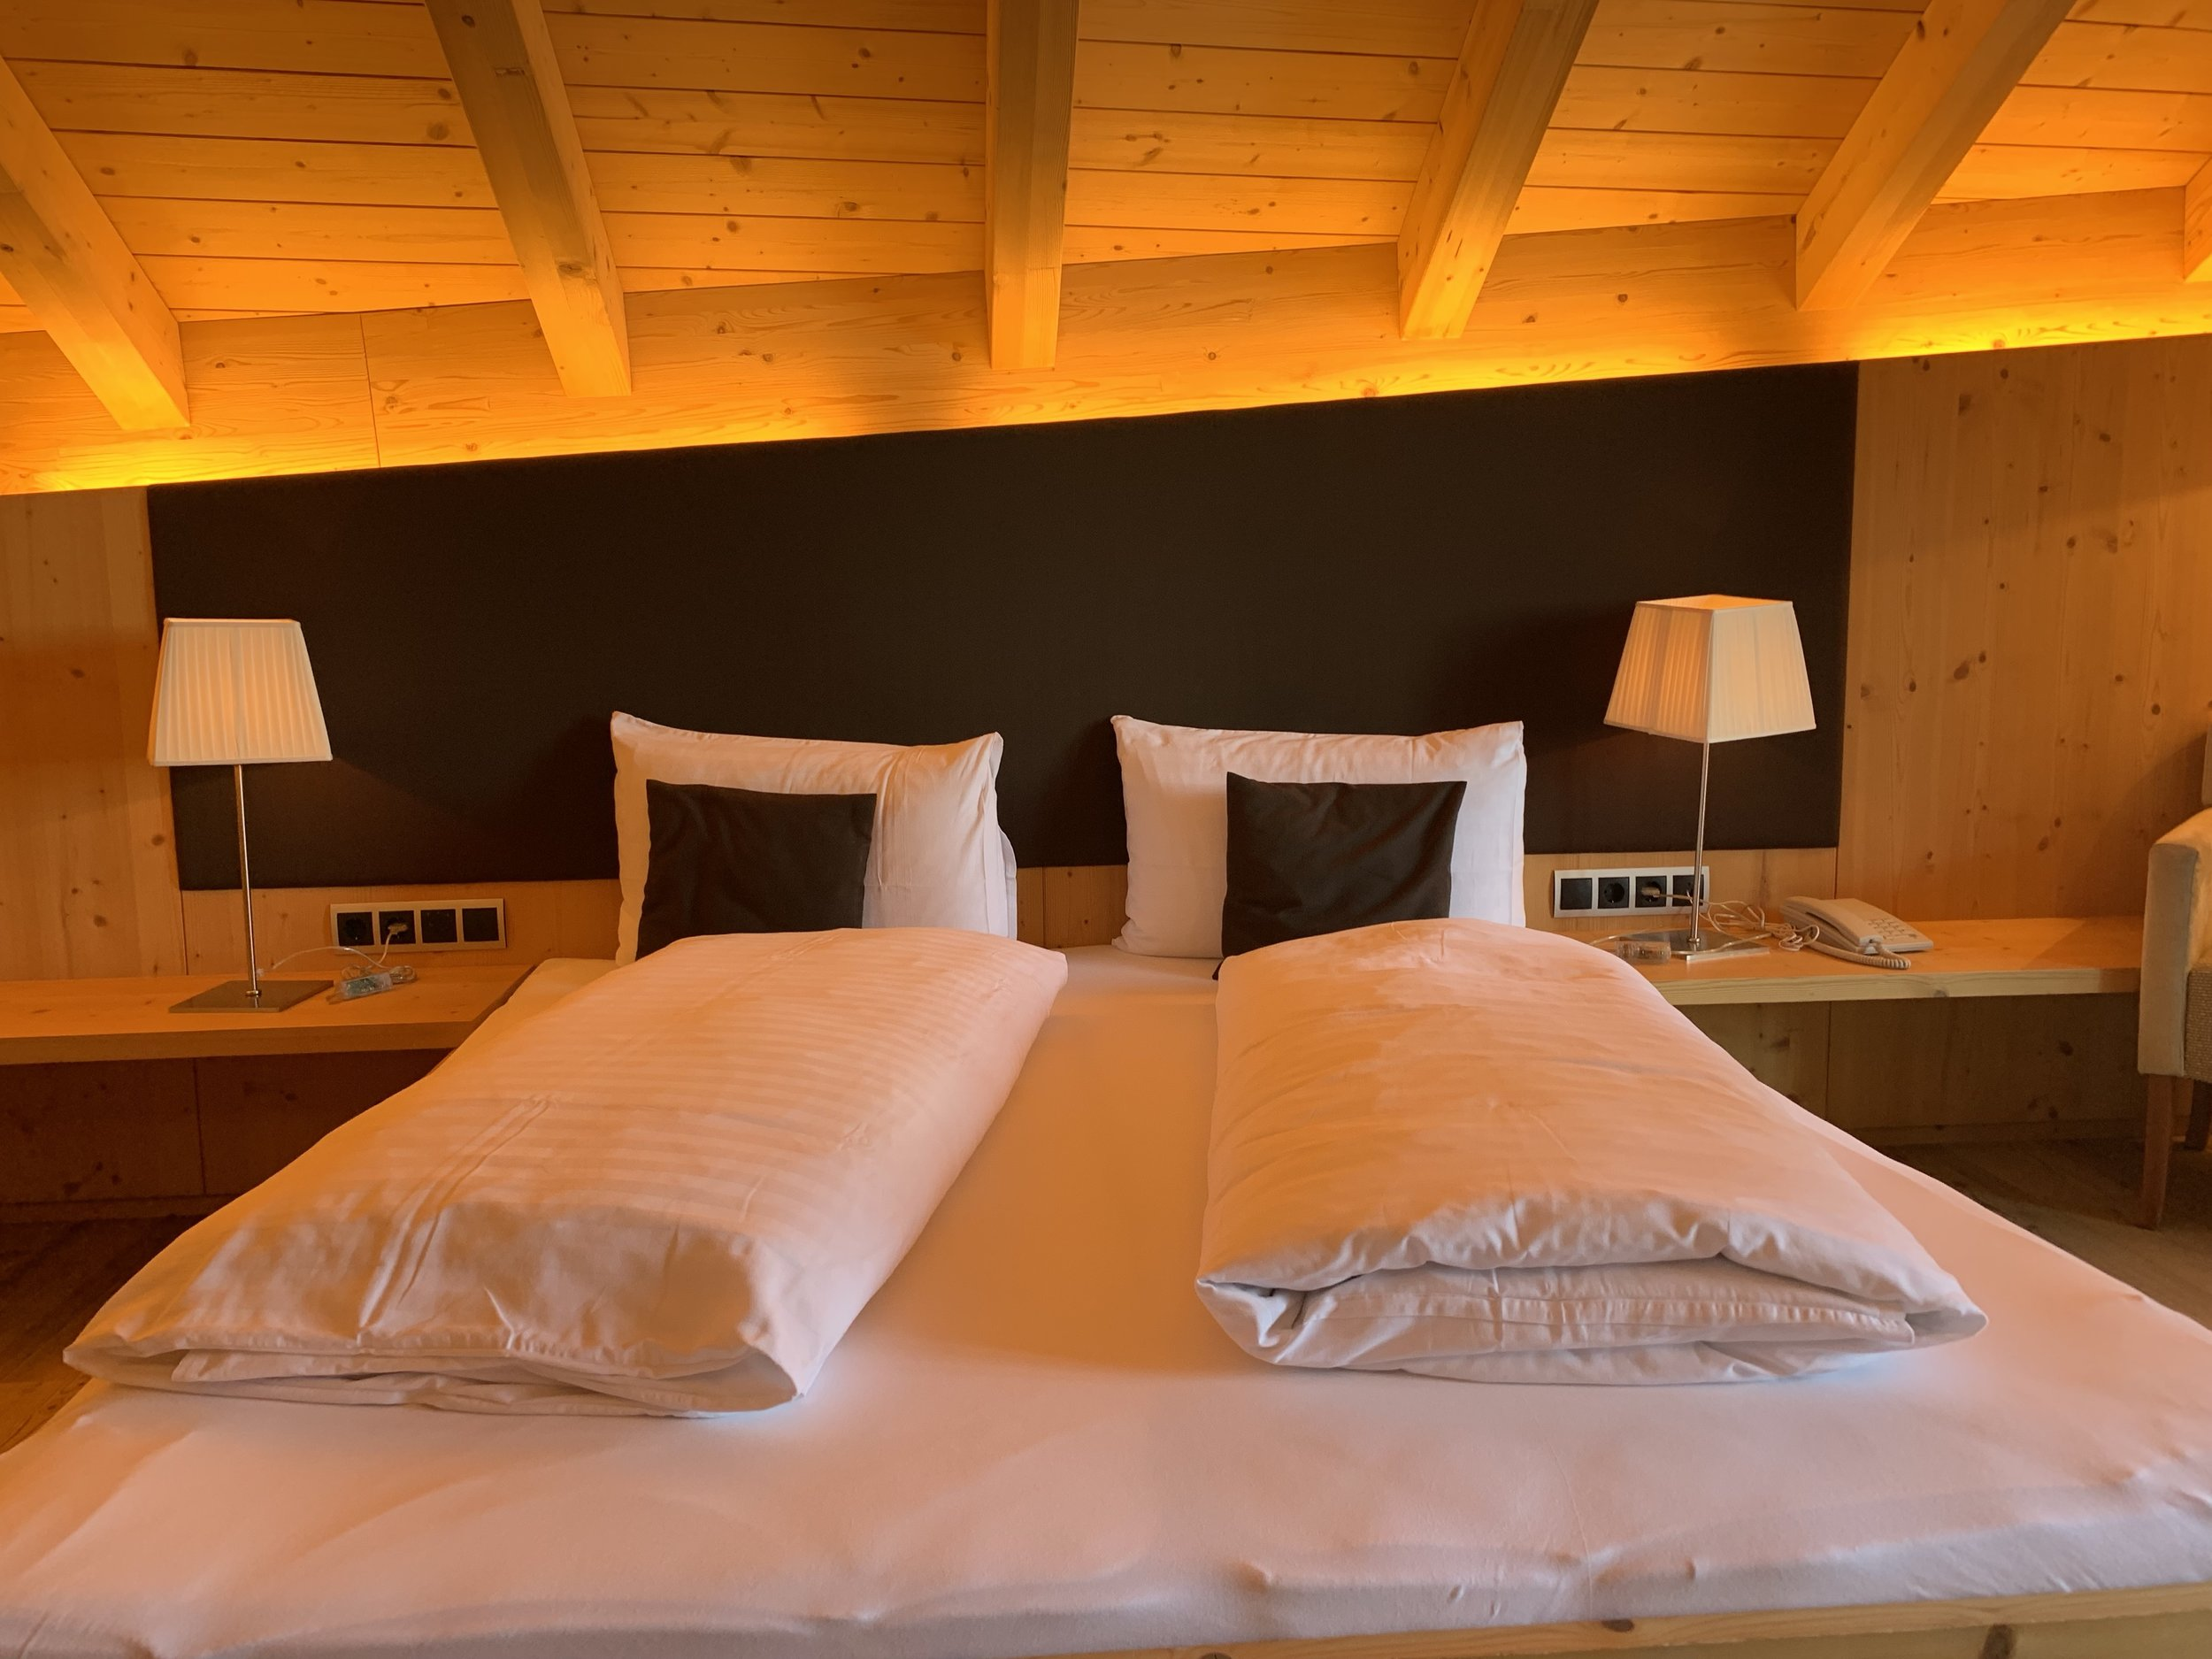 Rooms at rifugios are comfortable, cozy, and warm.